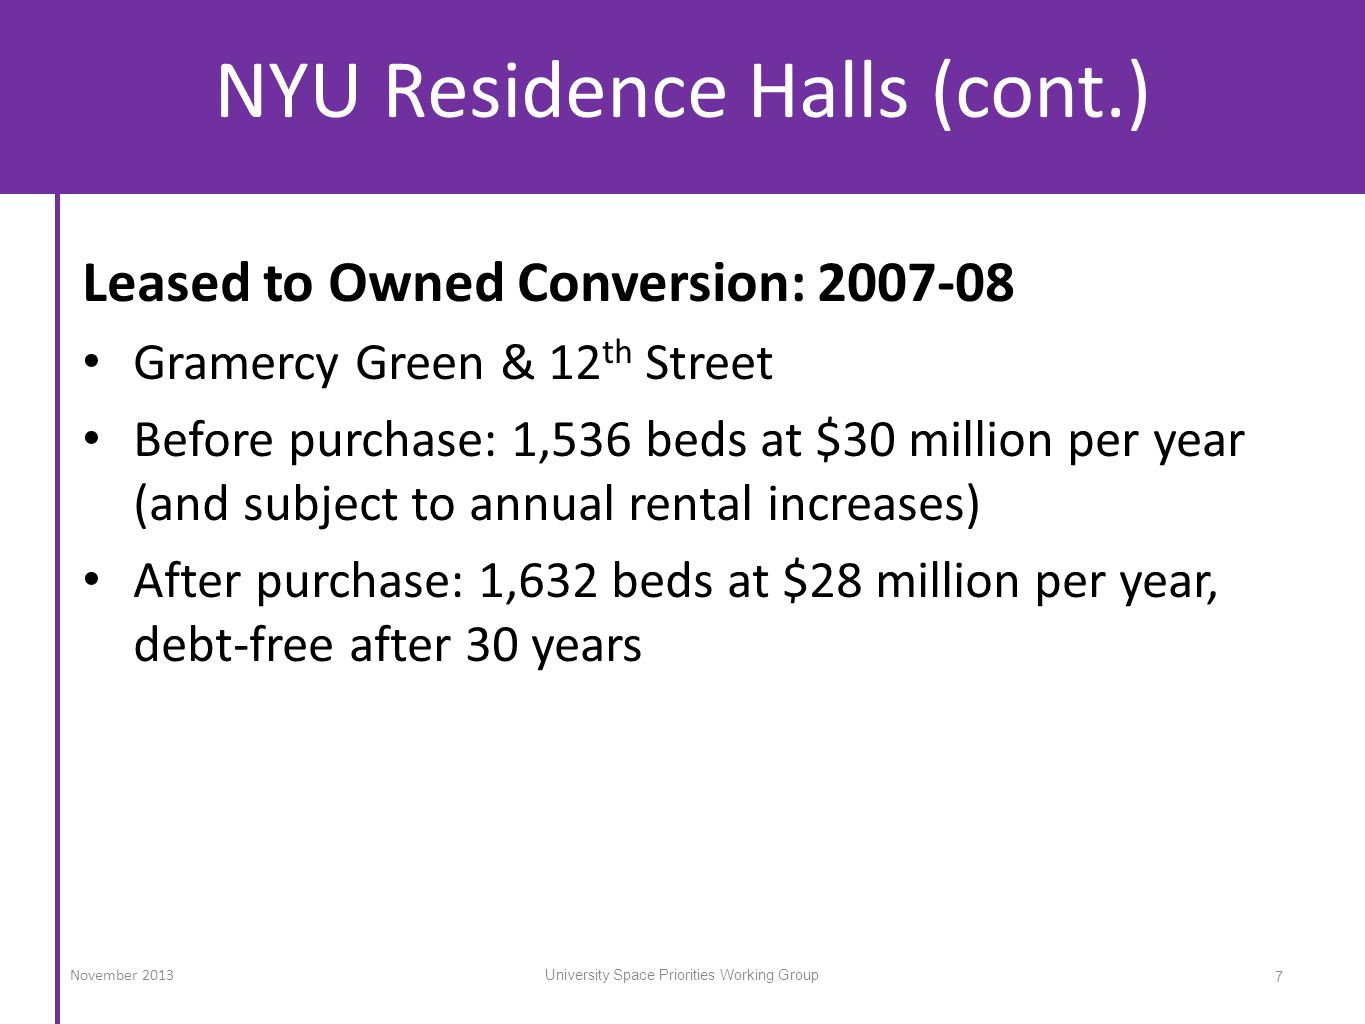 NYU Residence Halls (cont.) Leased to Owned Conversion: 2007-08 Gramercy Green & 12 th Street Before purchase: 1,536 beds at $30 million per year (and subject to annual rental increases) After purchase: 1,632 beds at $28 million per year, debt-free after 30 years 7 University Space Priorities Working Group November 2013